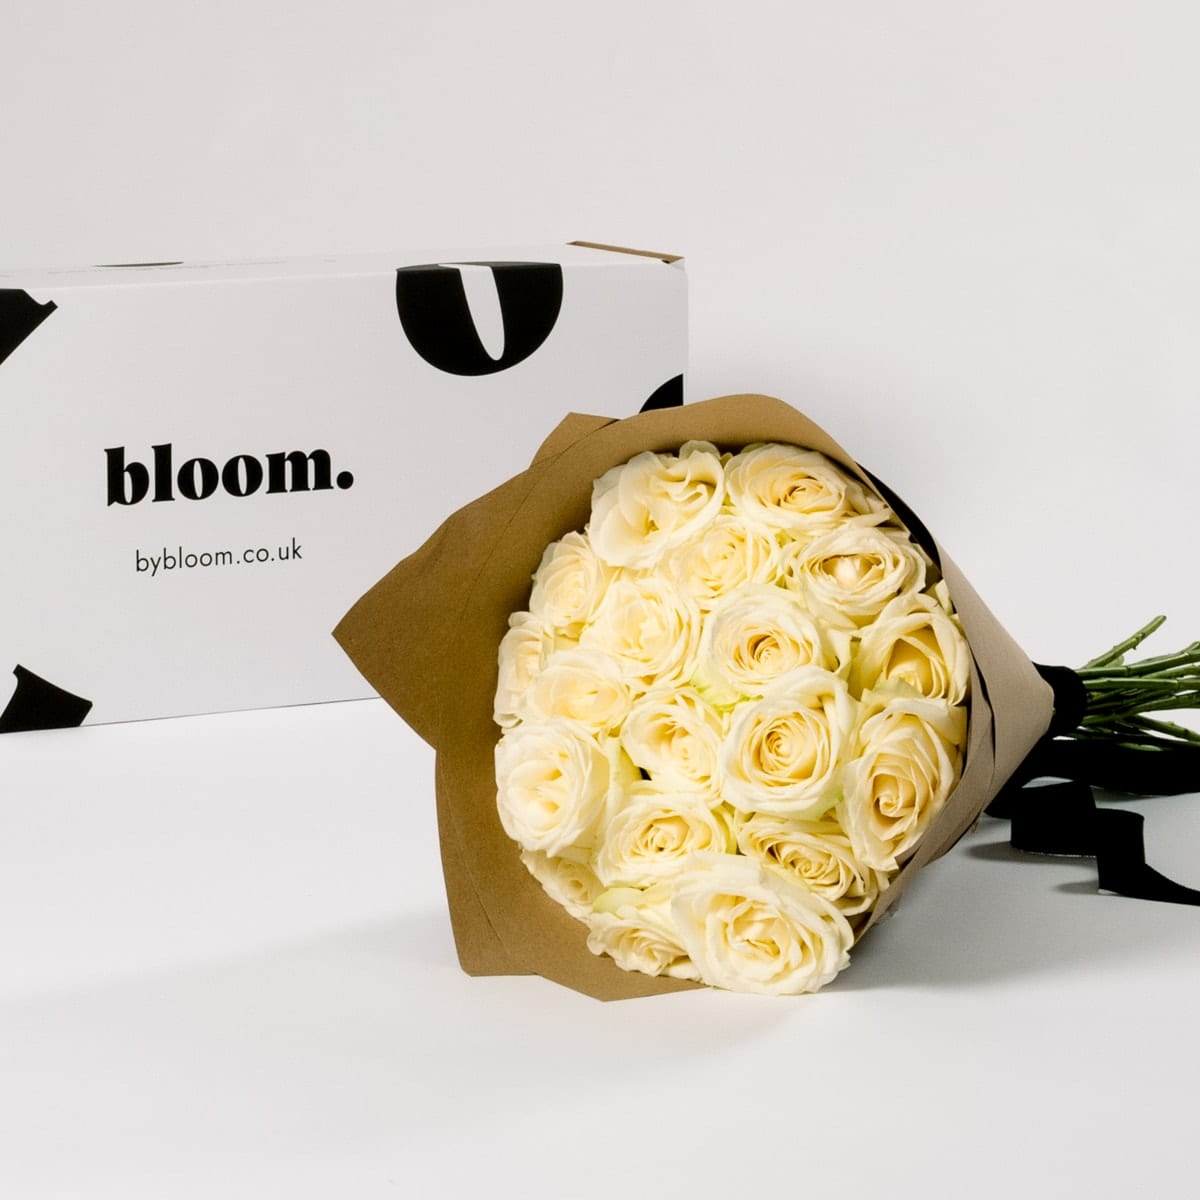 Bloom Flower Delivery | White Avalanche Roses